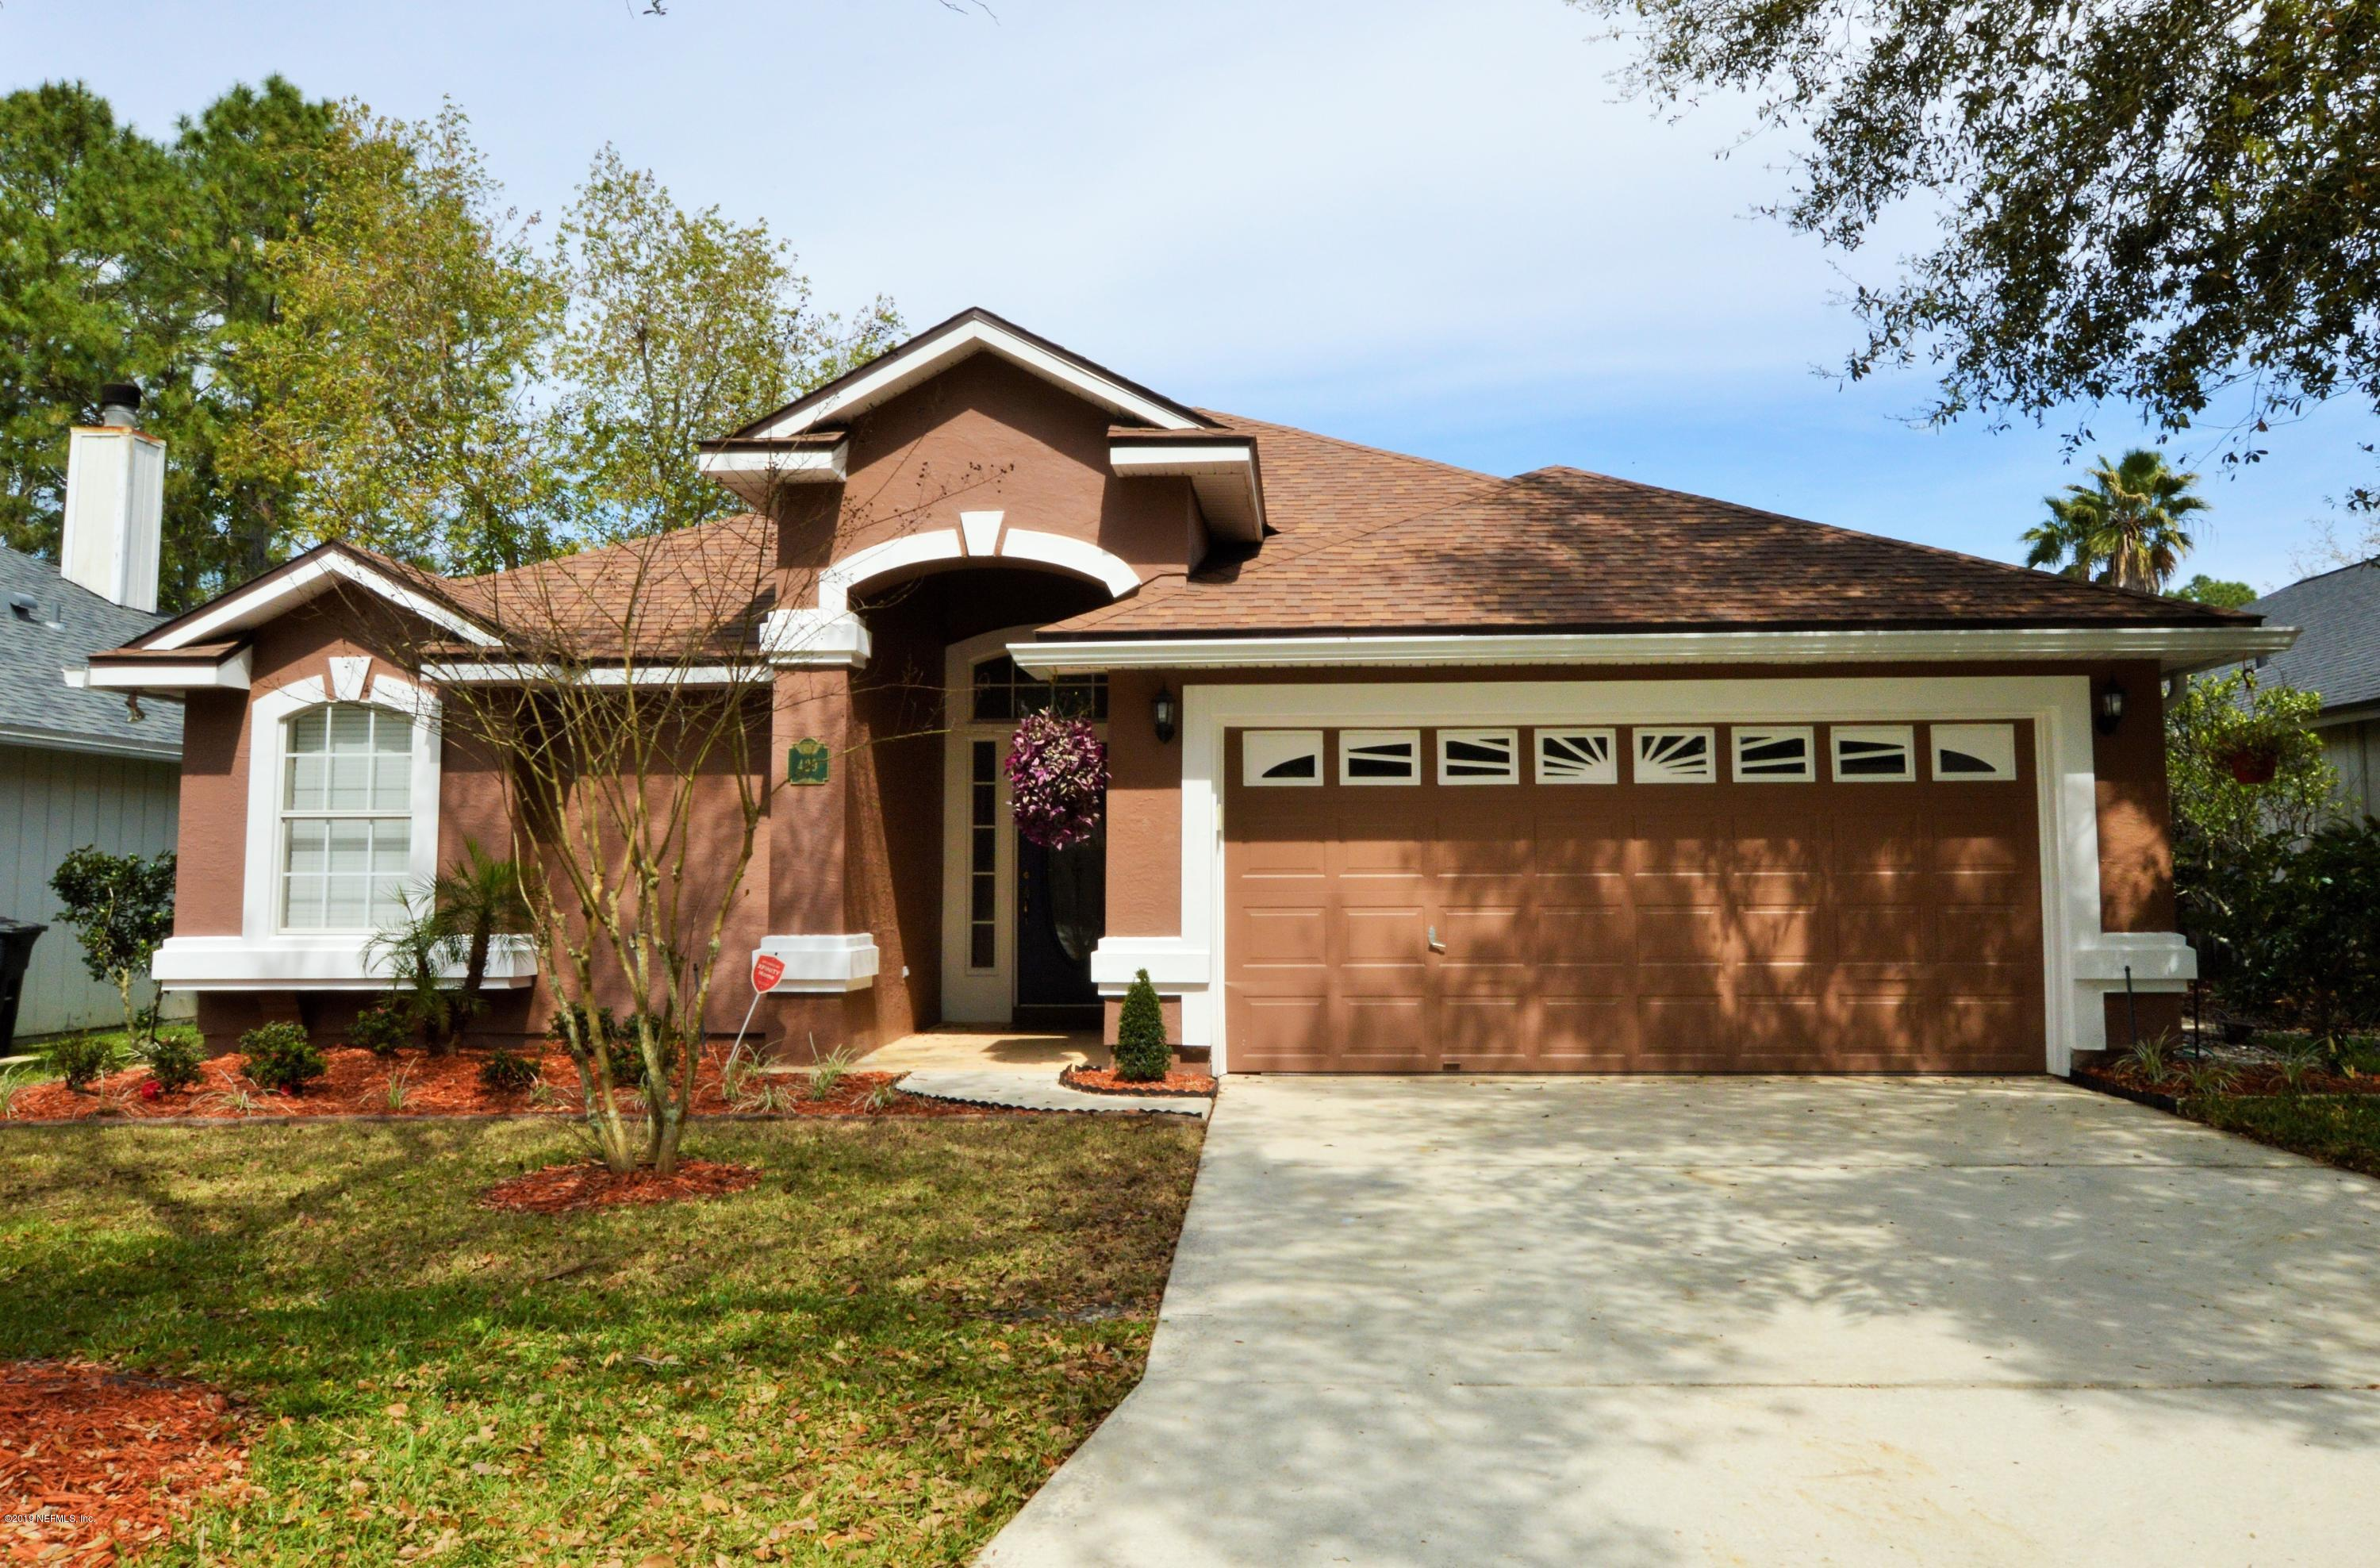 429  MORNING GLORY LN N, Julington Creek in ST. JOHNS County, FL 32259 Home for Sale